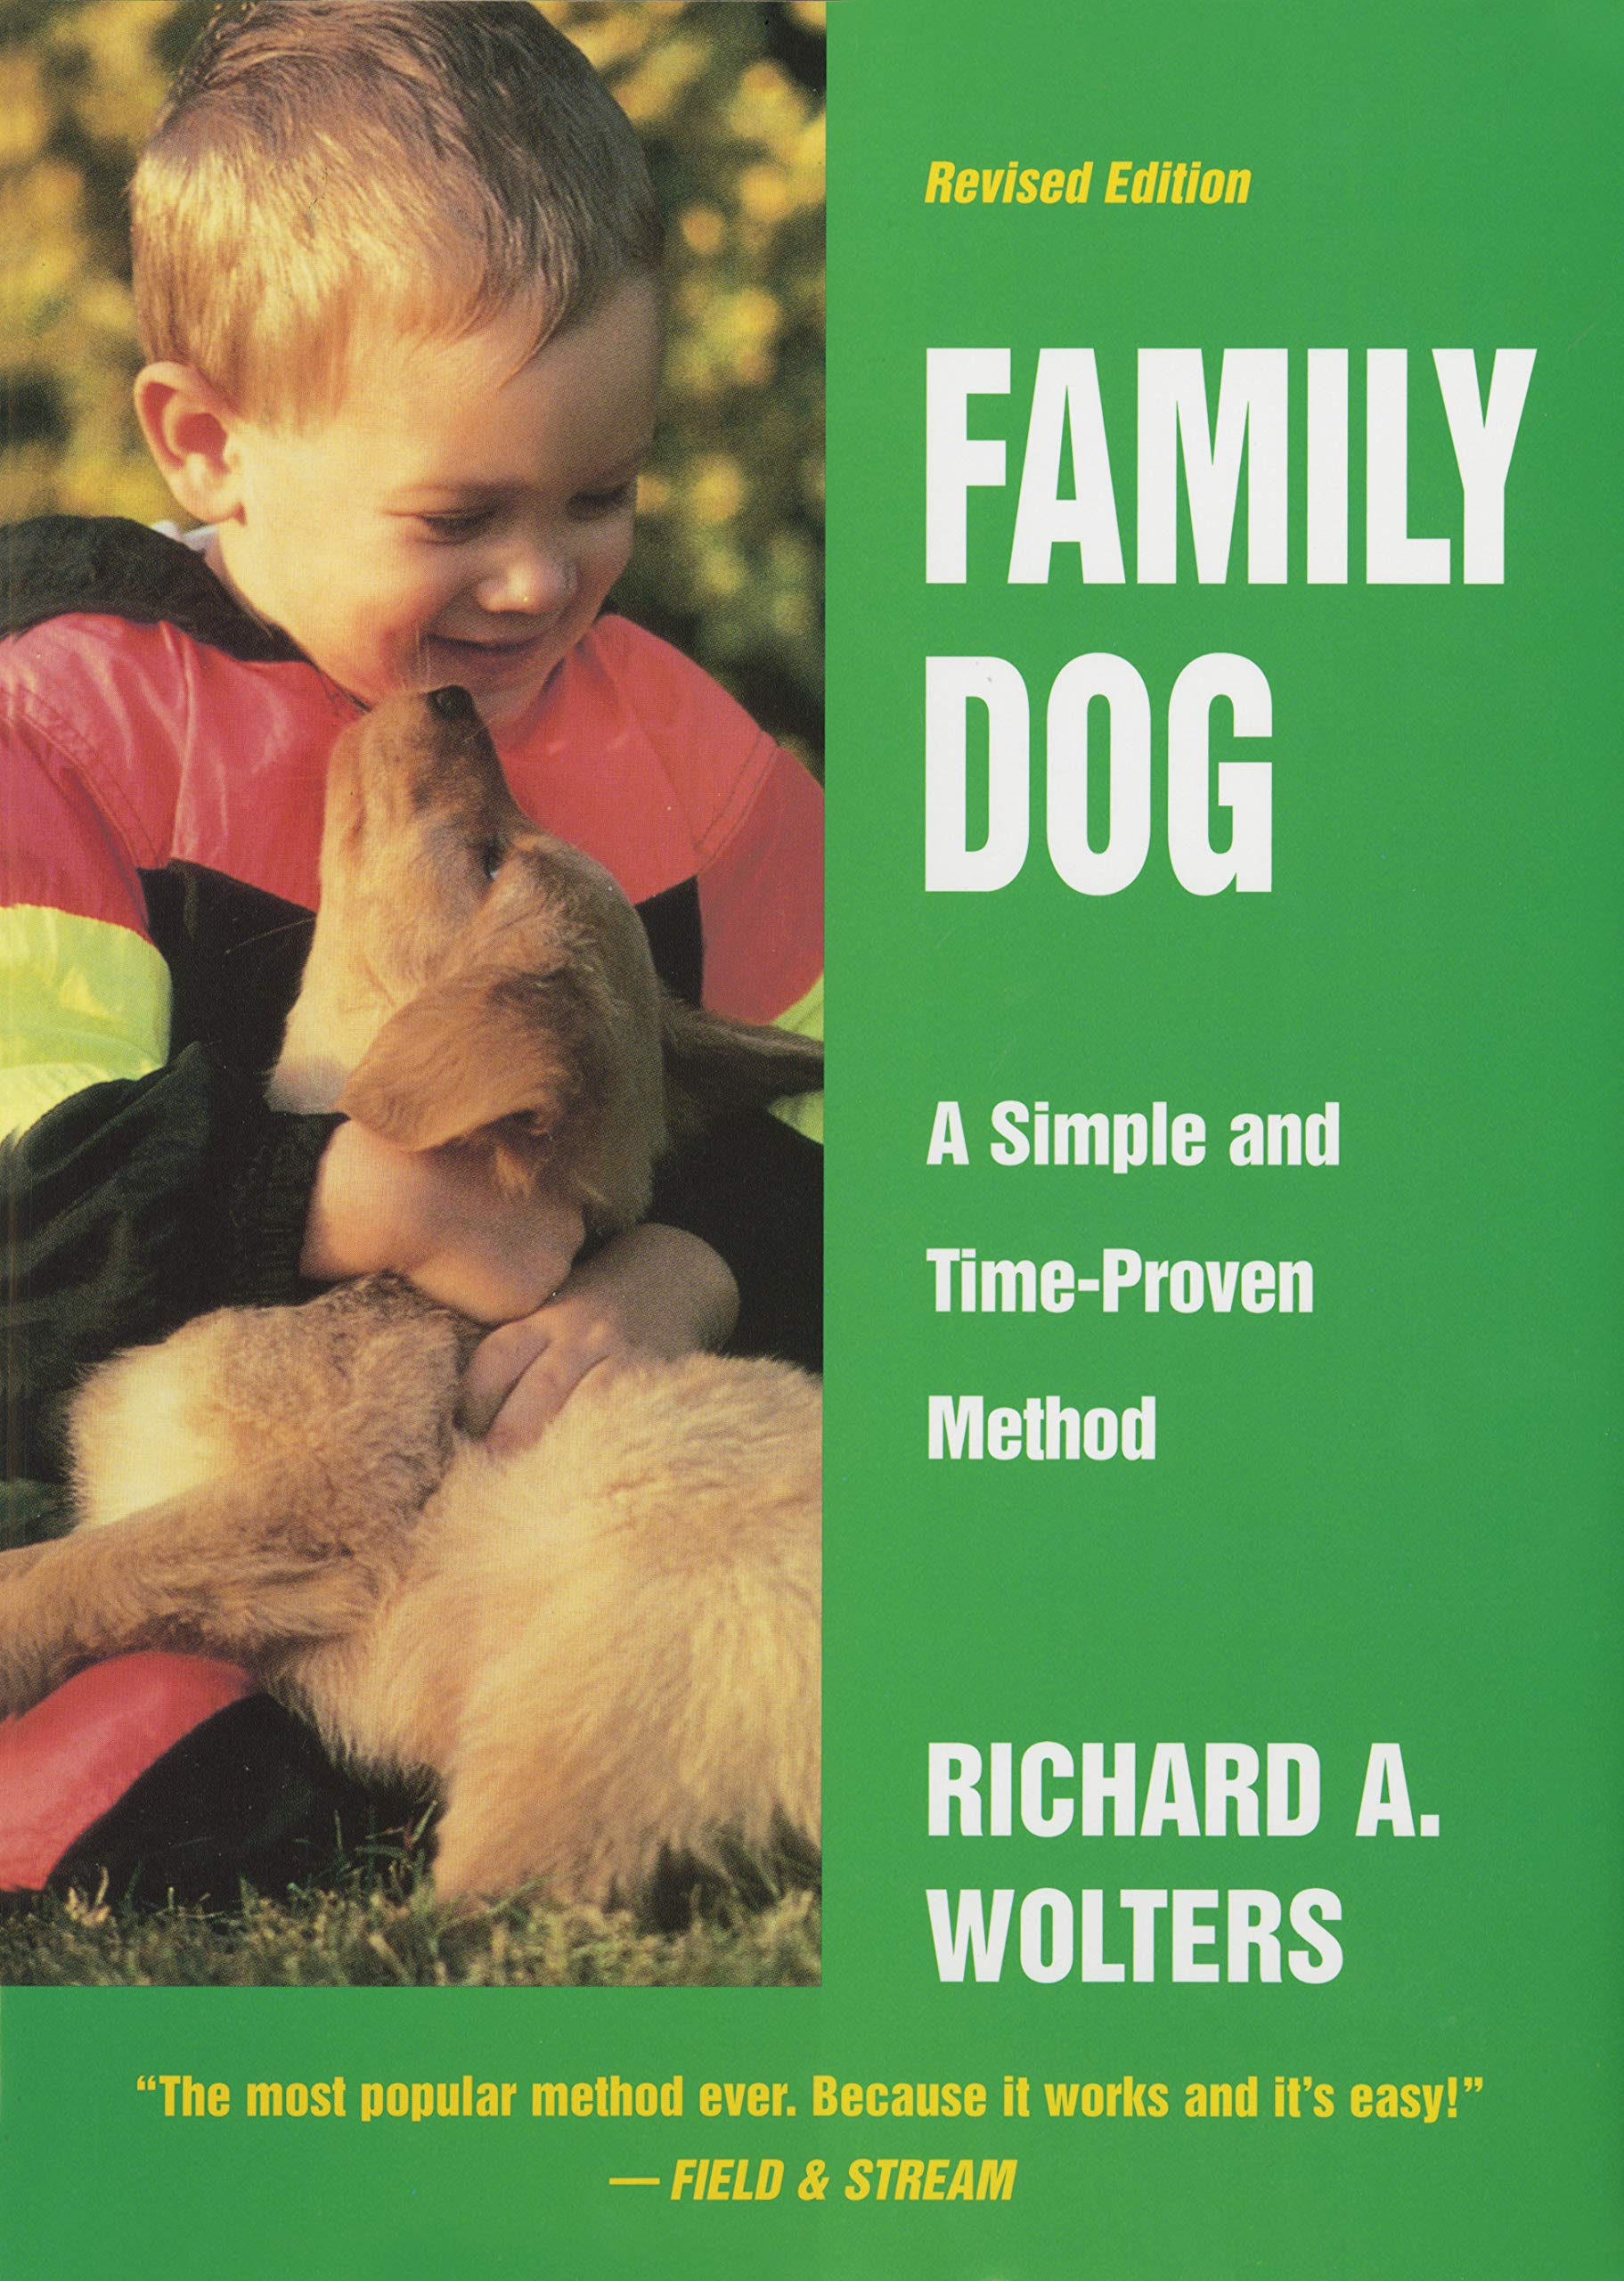 Family Dog: A Simple and Time-Proven Method by Dutton Books